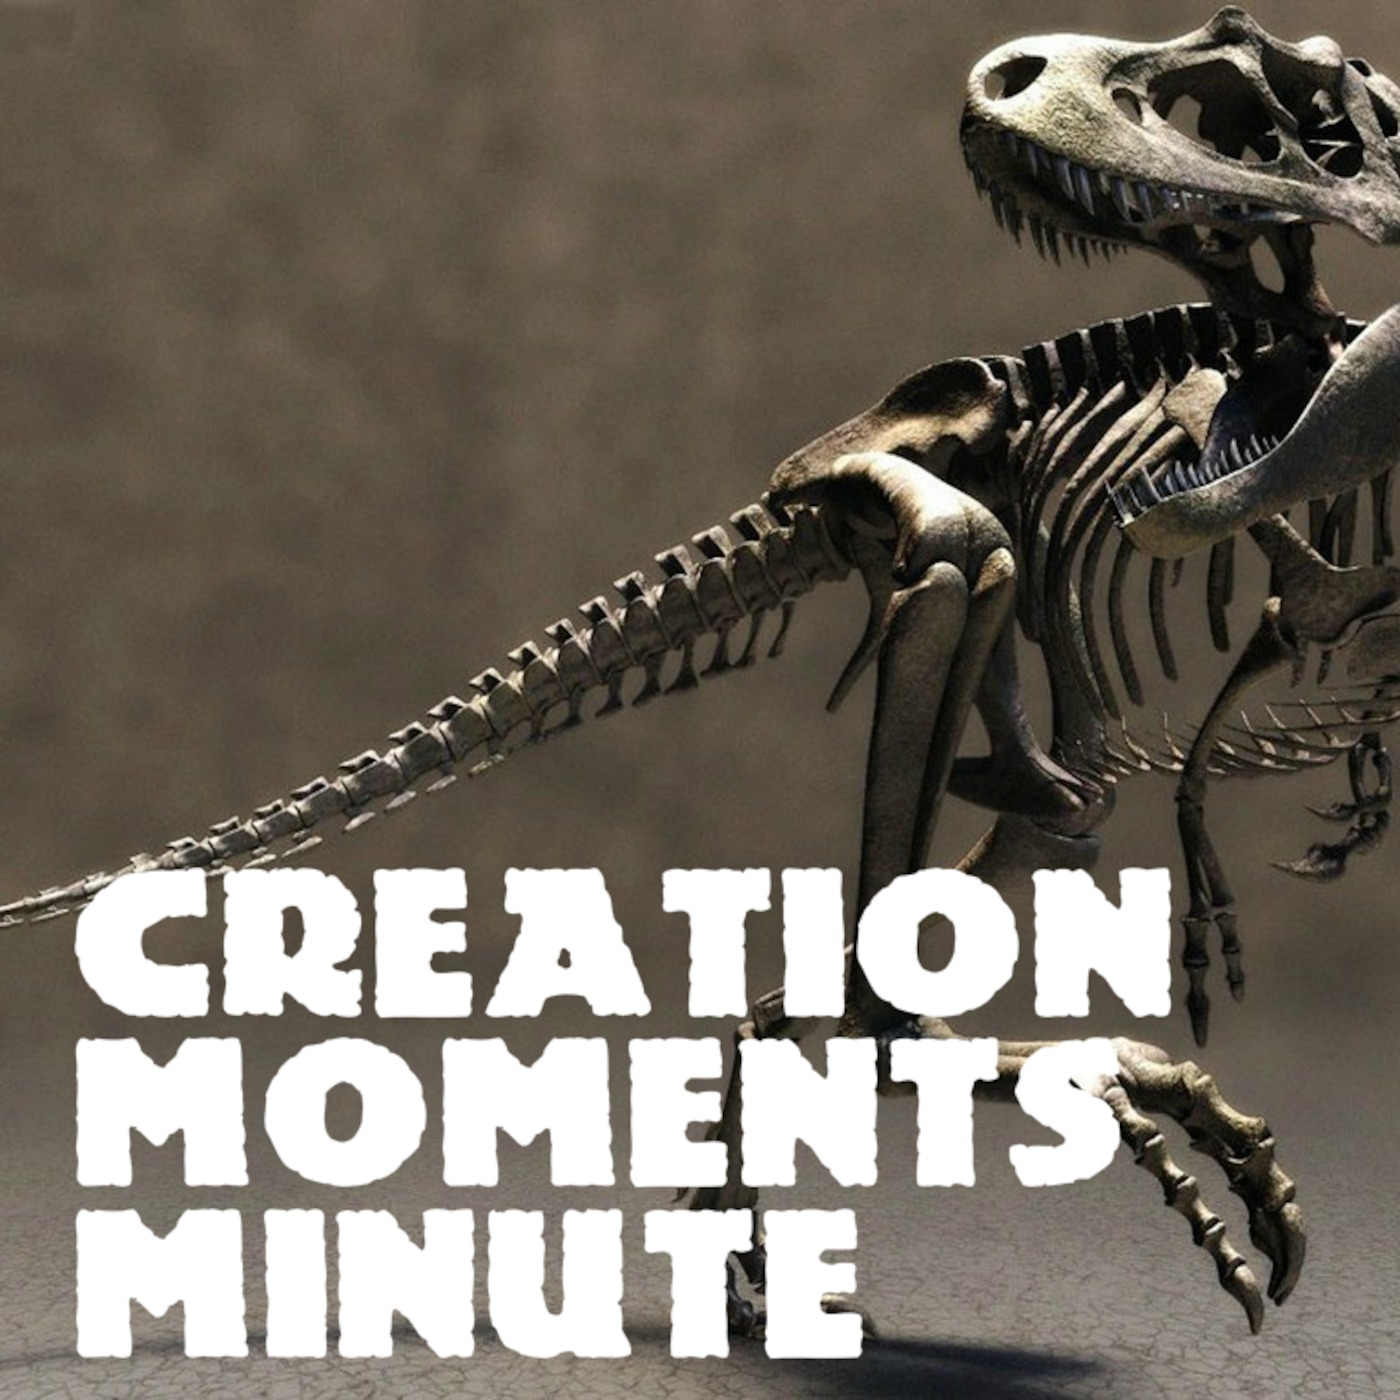 CREATION MOMENTS MINUTE